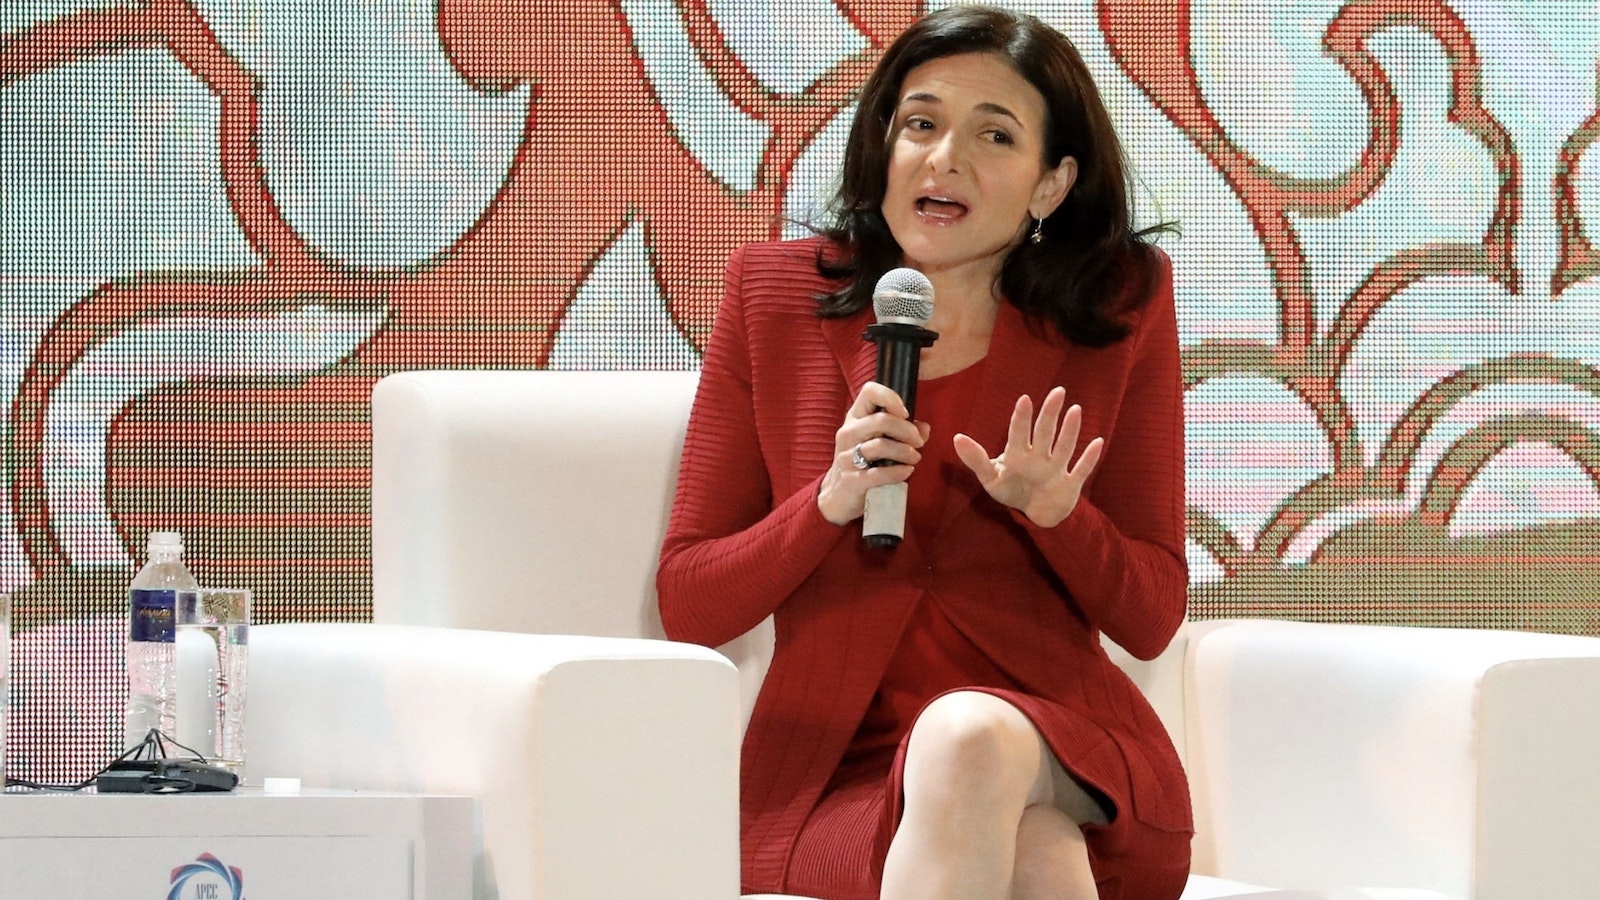 Facebook COO Sheryl Sandberg in Vietnam at a conference in 2017. Photo by Bloomberg